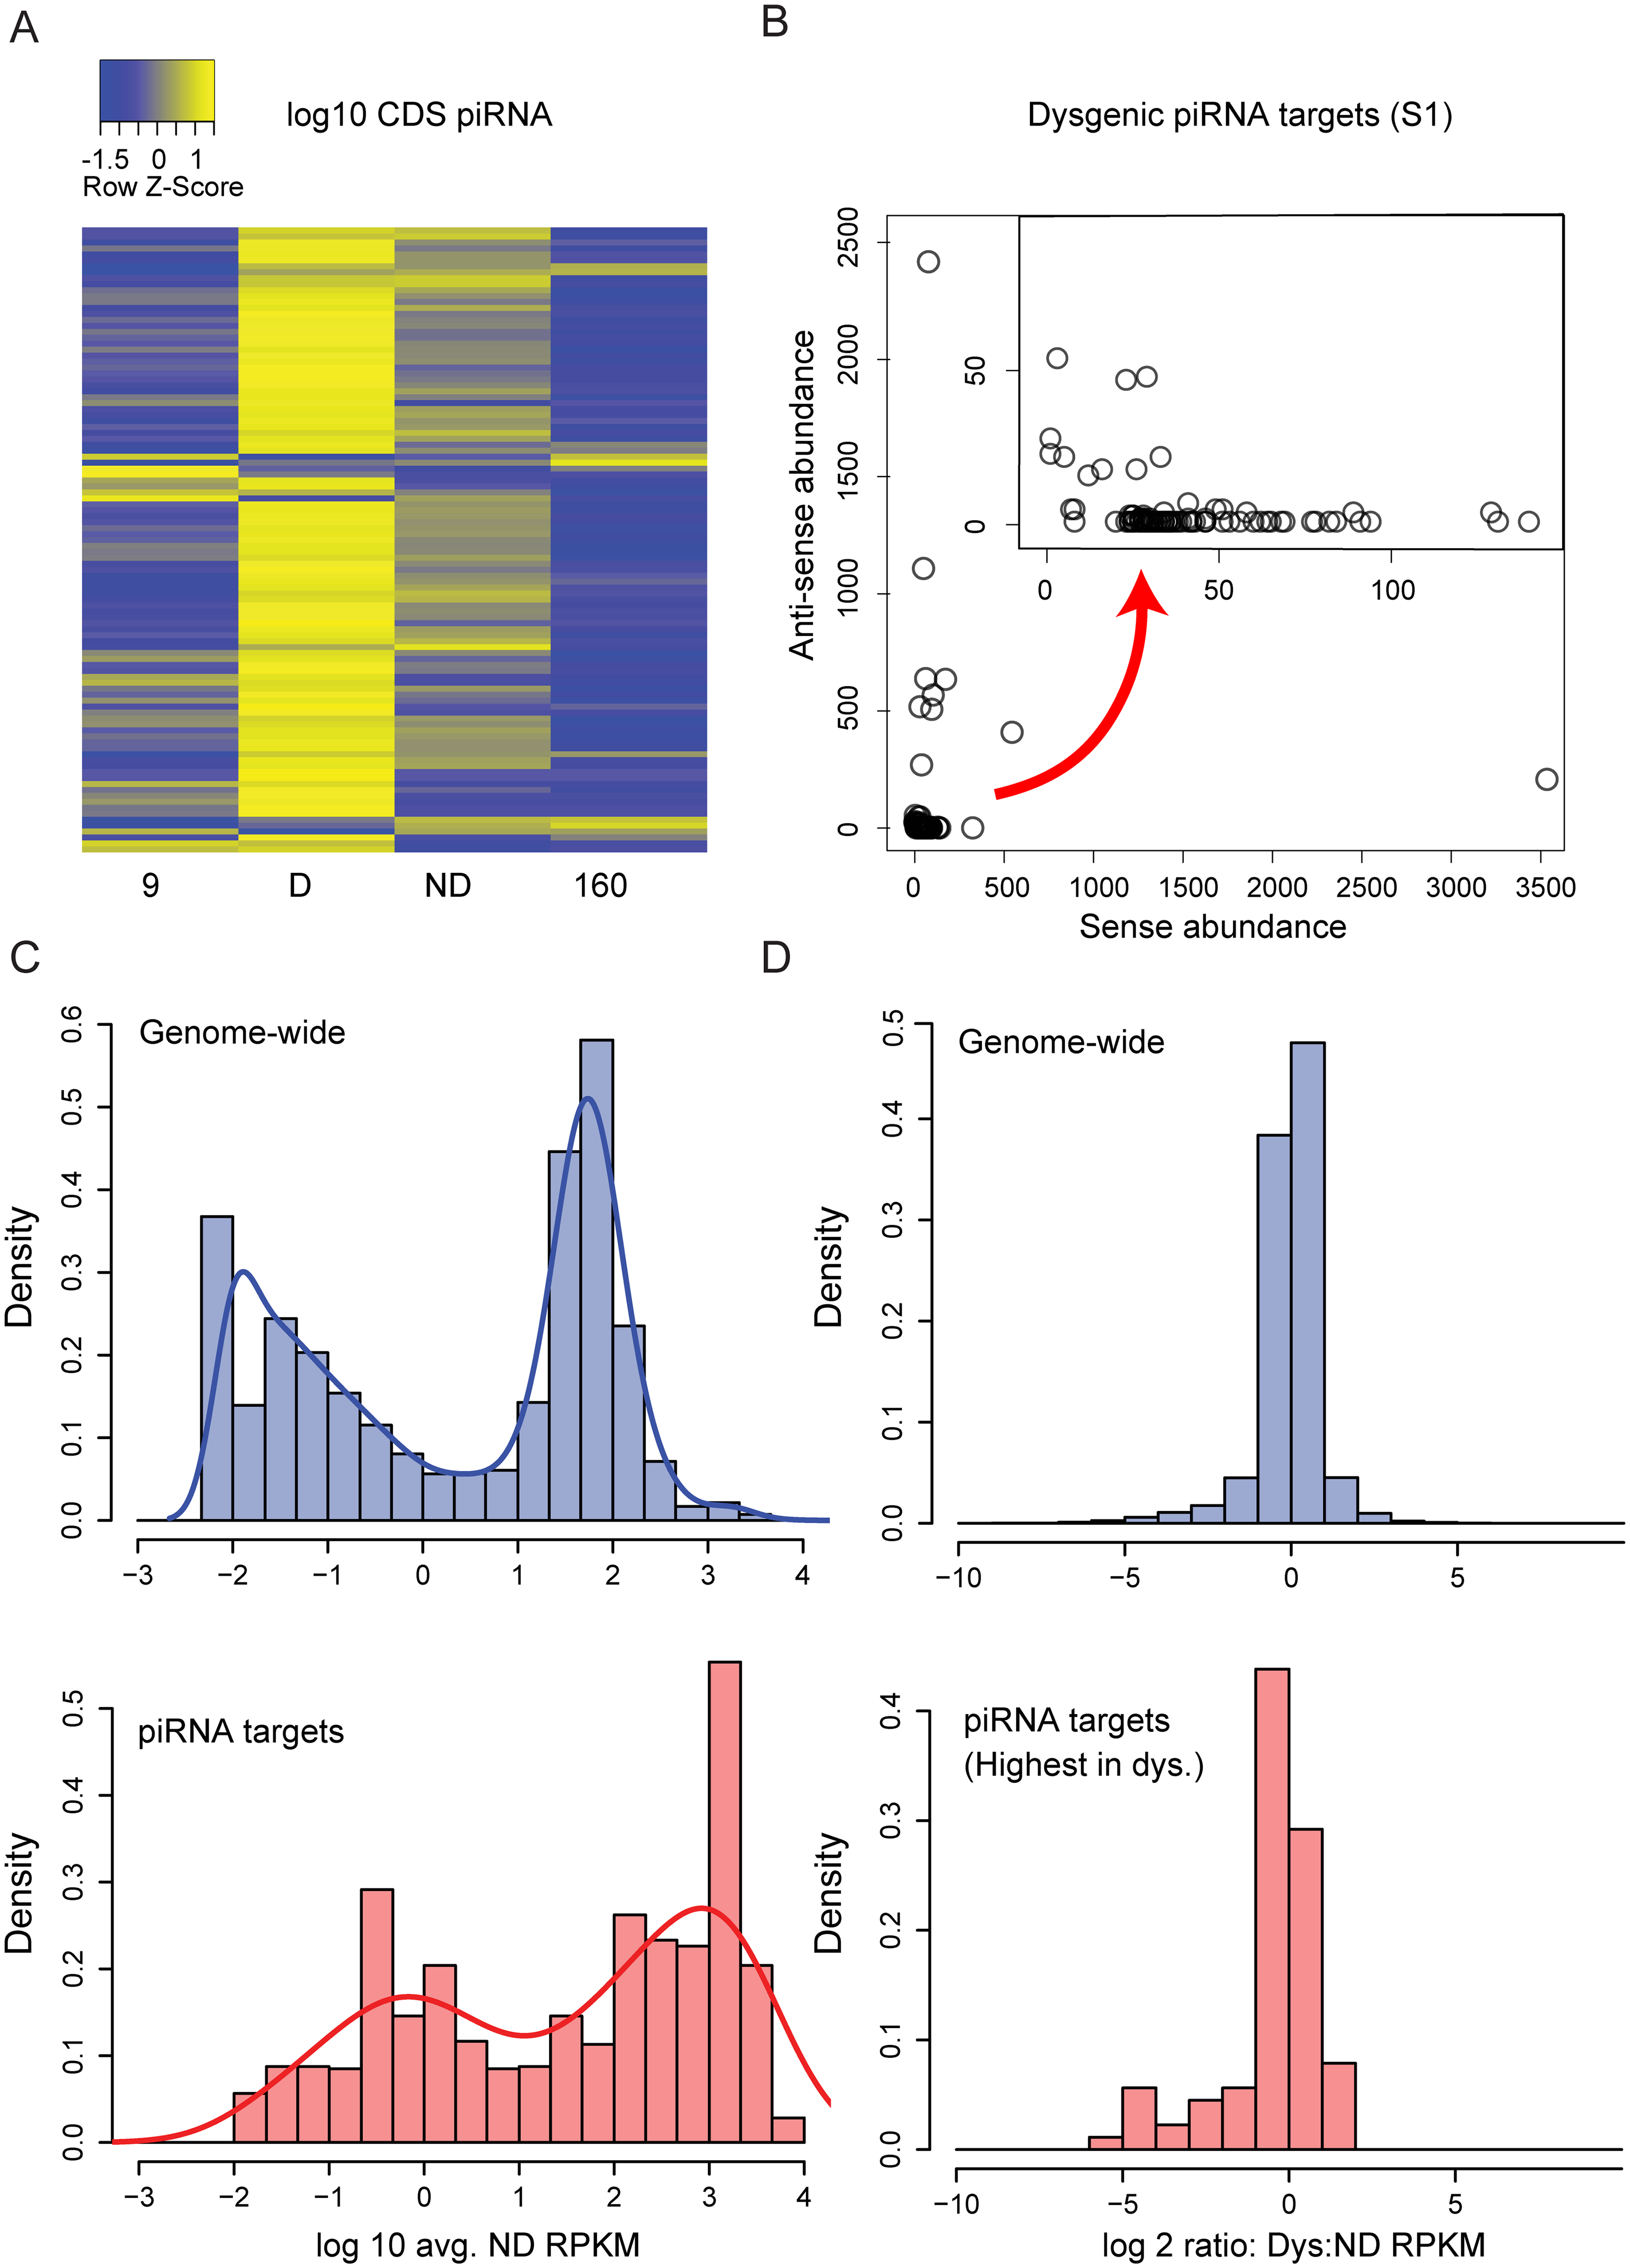 Genic piRNA targeting is increased in the dysgenic germline.